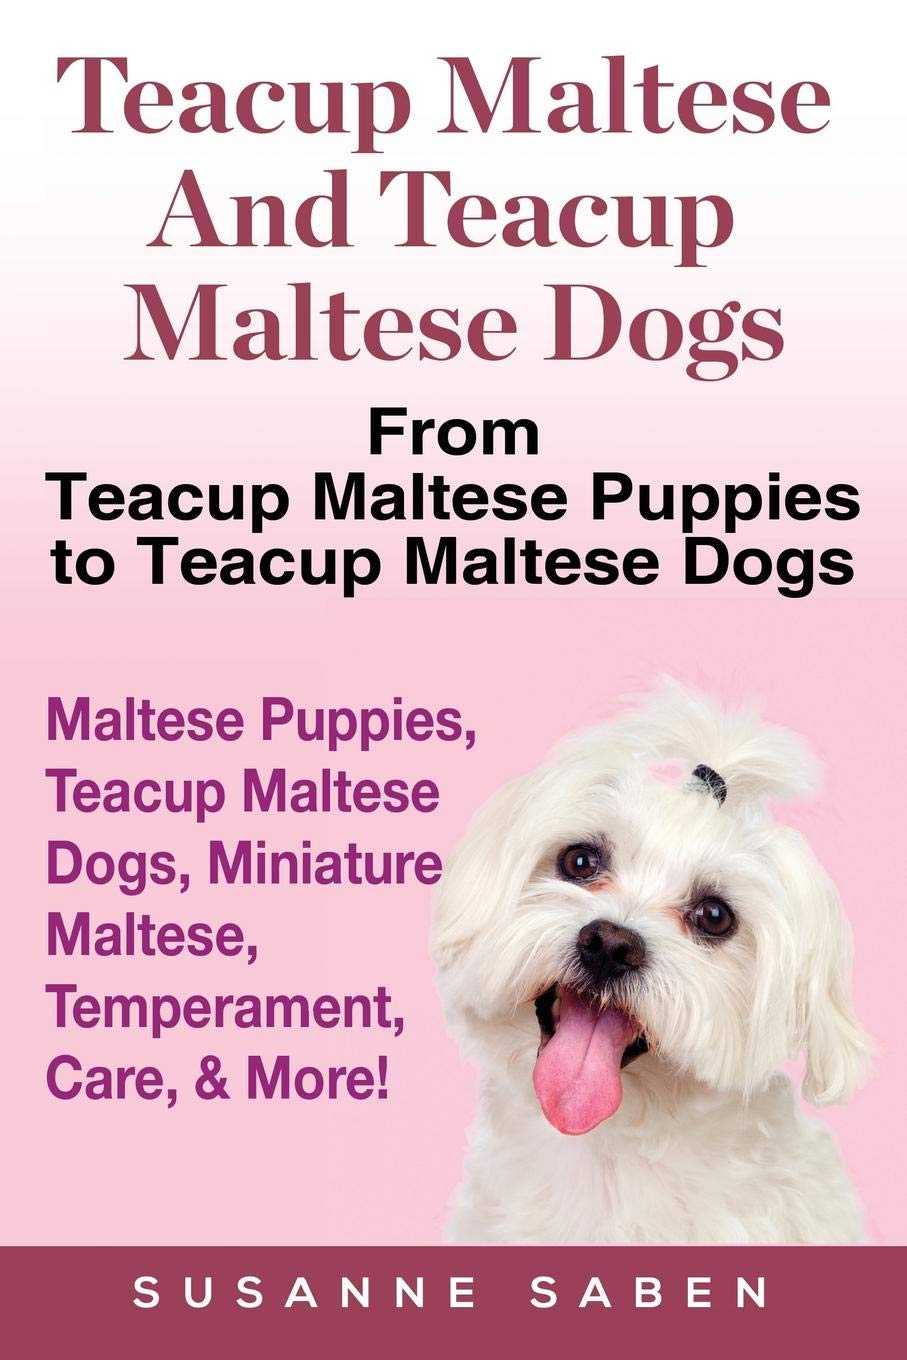 Buy Teacup Maltese And Teacup Maltese Dogs: From Teacup